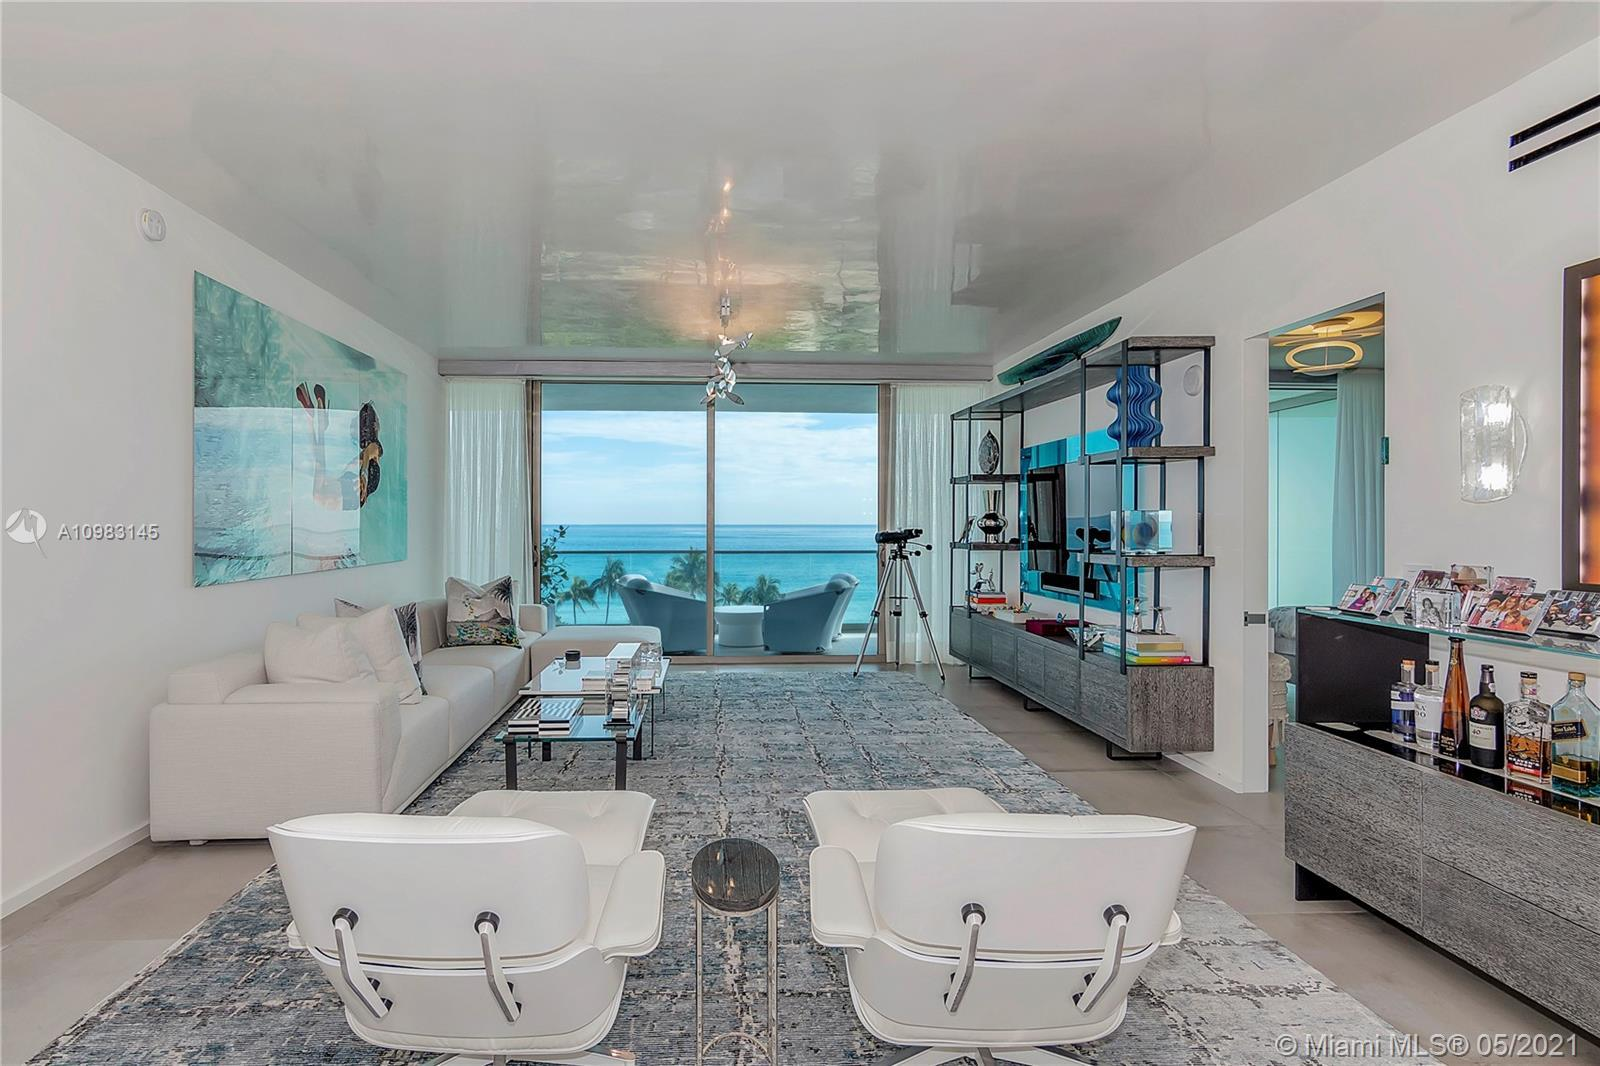 ARE YOU LOOKING FOR A PERFECT OCEAN FRONT CONDO, AT ONE OF THE BEST BEACHES OF SOUTH FLORIDA, TO CAL